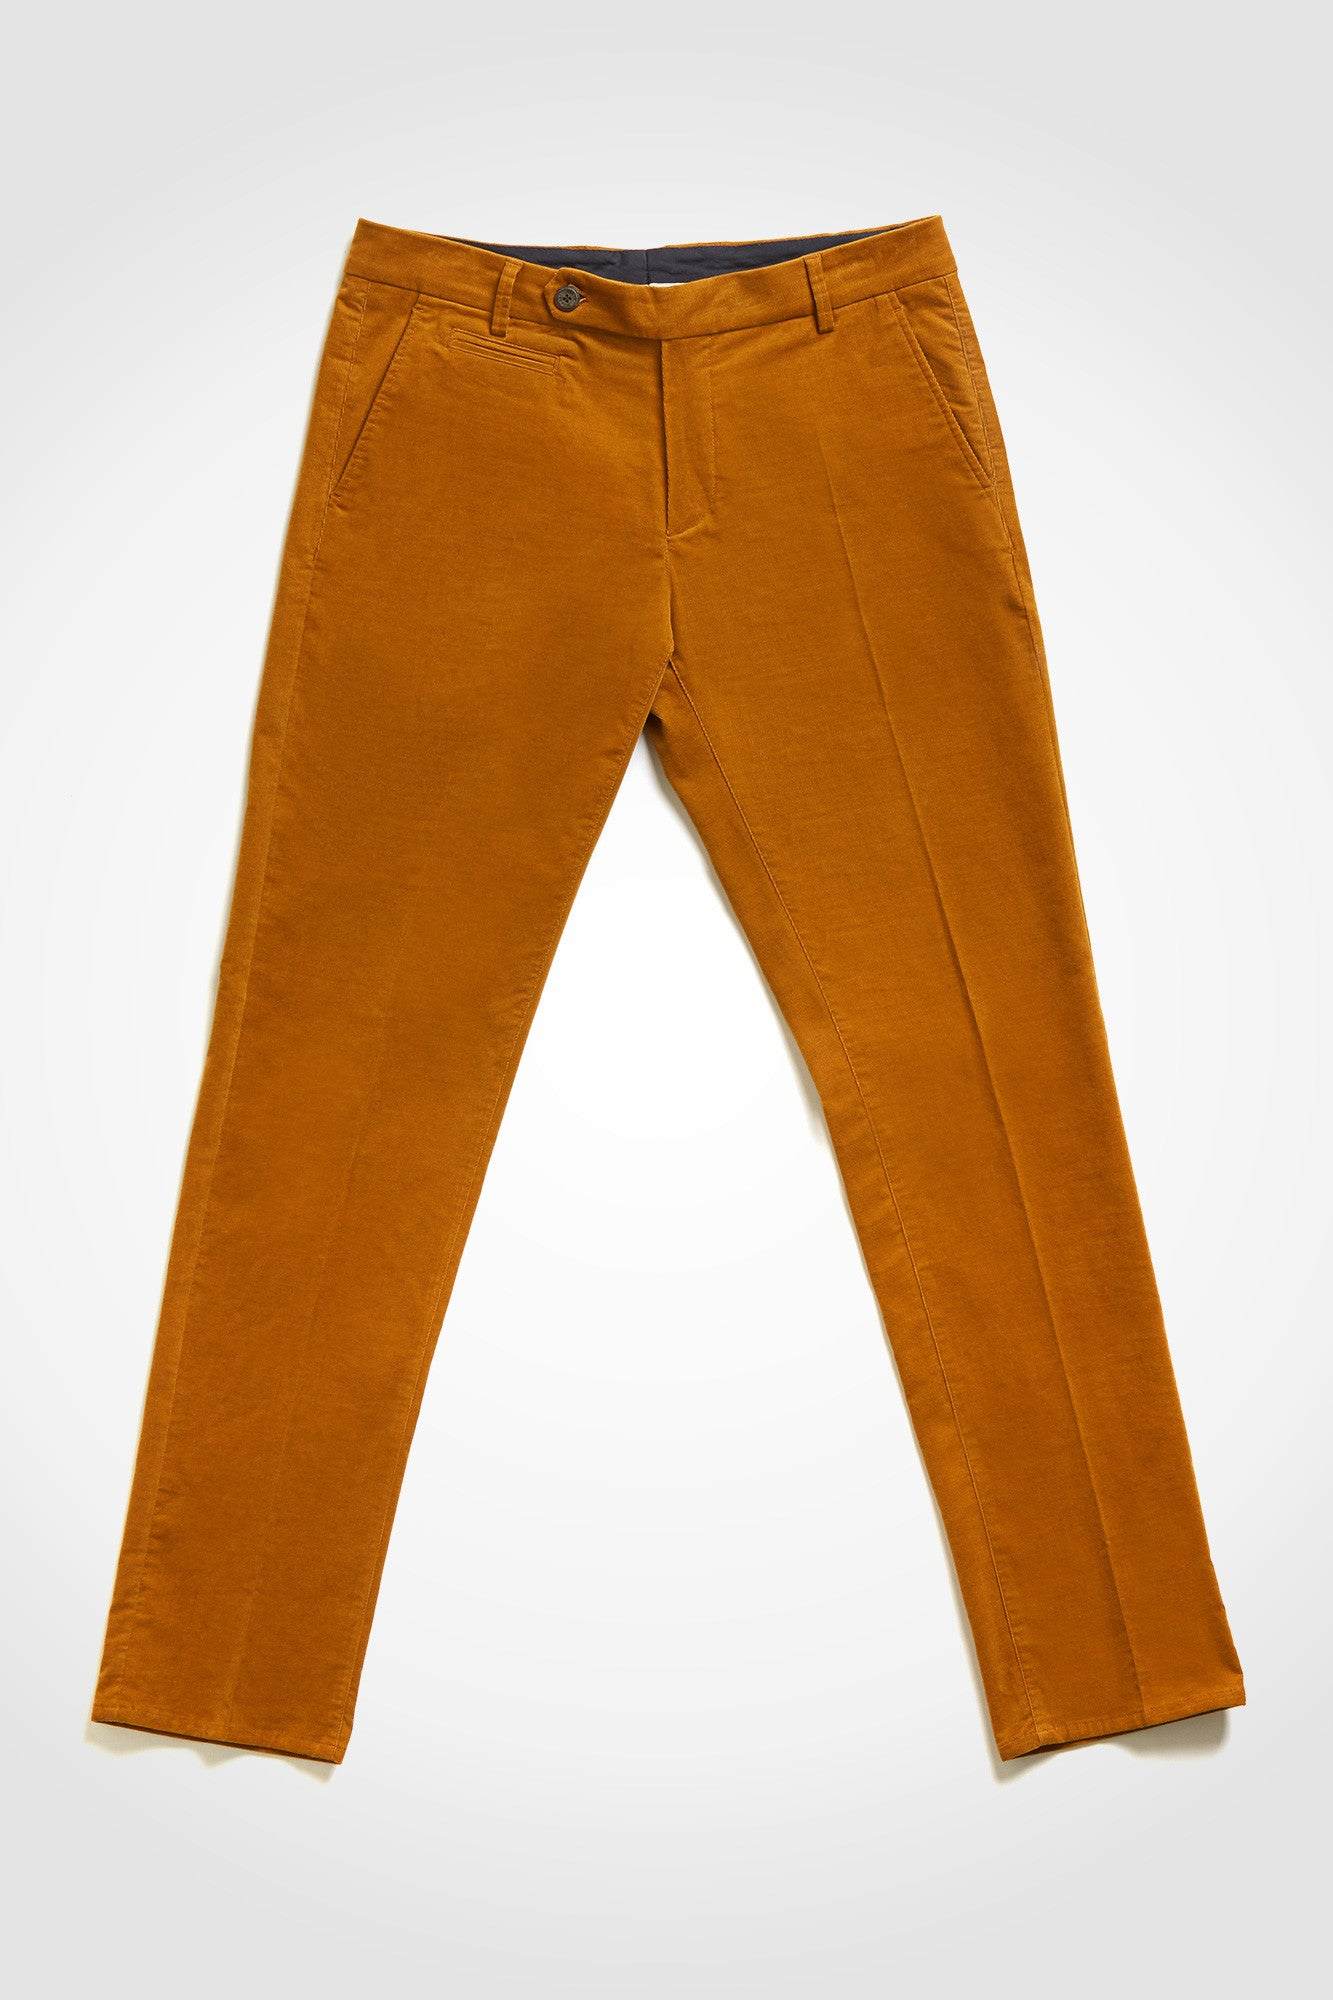 TROUSERS – MIDDLEBURG - Brett Johnson - Pants - TOPGEARNY